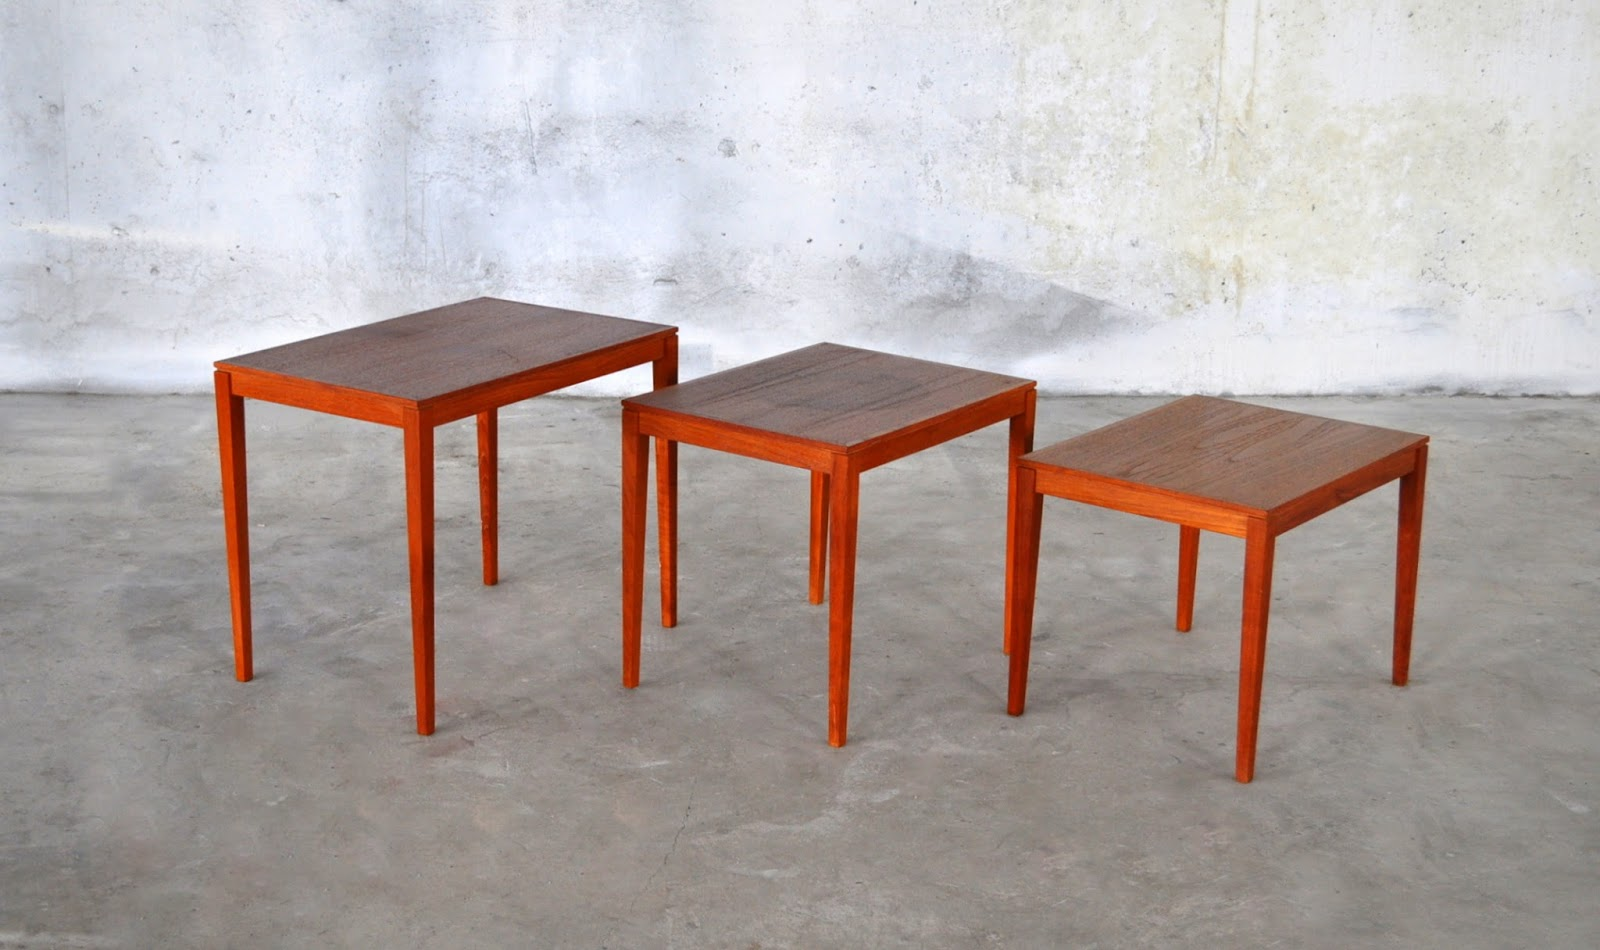 Excellent Danish Modern Nesting Tables 1600 x 950 · 169 kB · jpeg